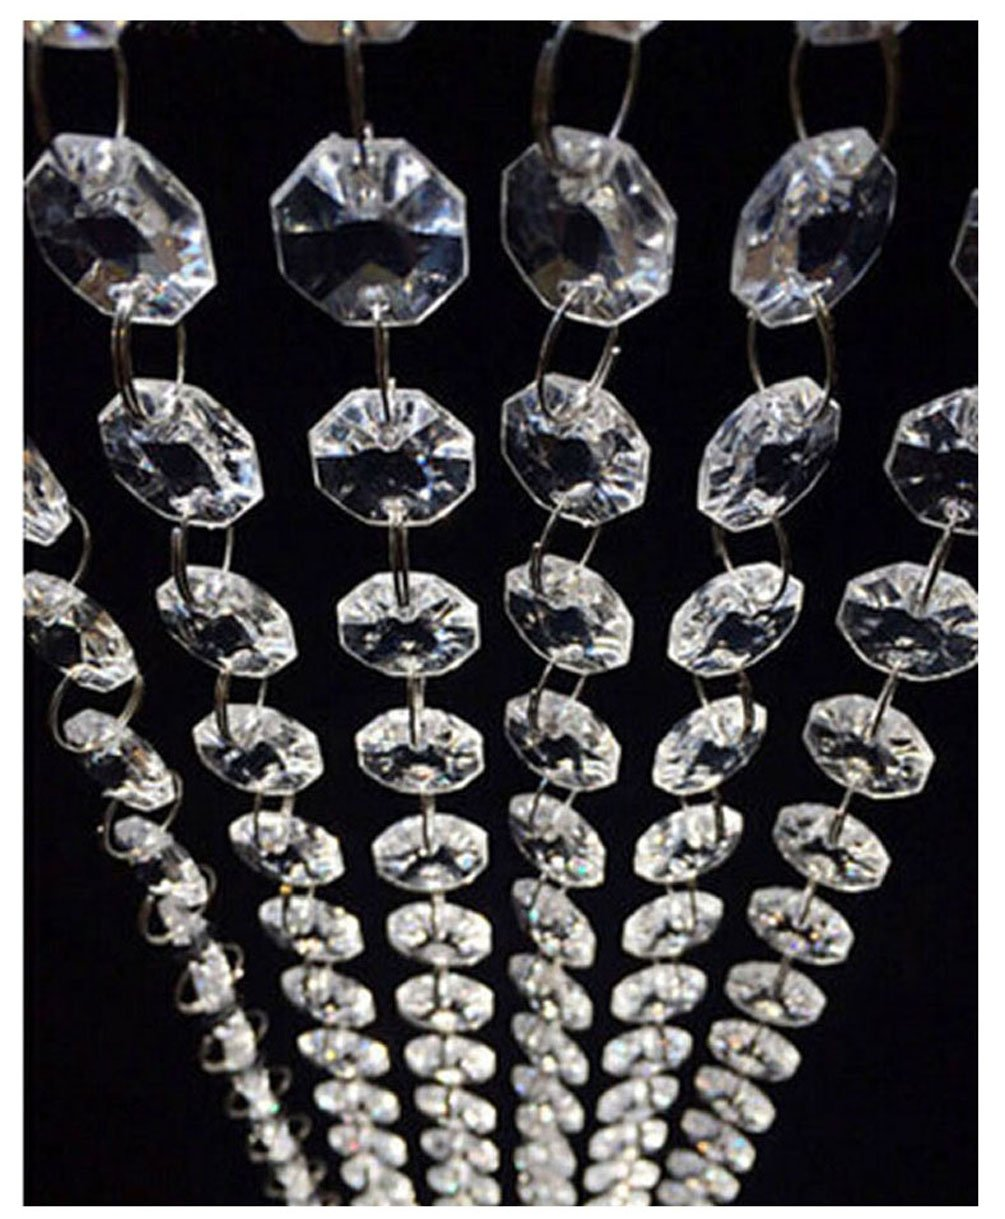 98.4FT Magnificent Crystal Acrylic Gems Bead Strands, Manzanita Crystals, Tree Garlands, Christmas Wedding Party Celebration Decoration (99FT(30M)) by Jiangsheng